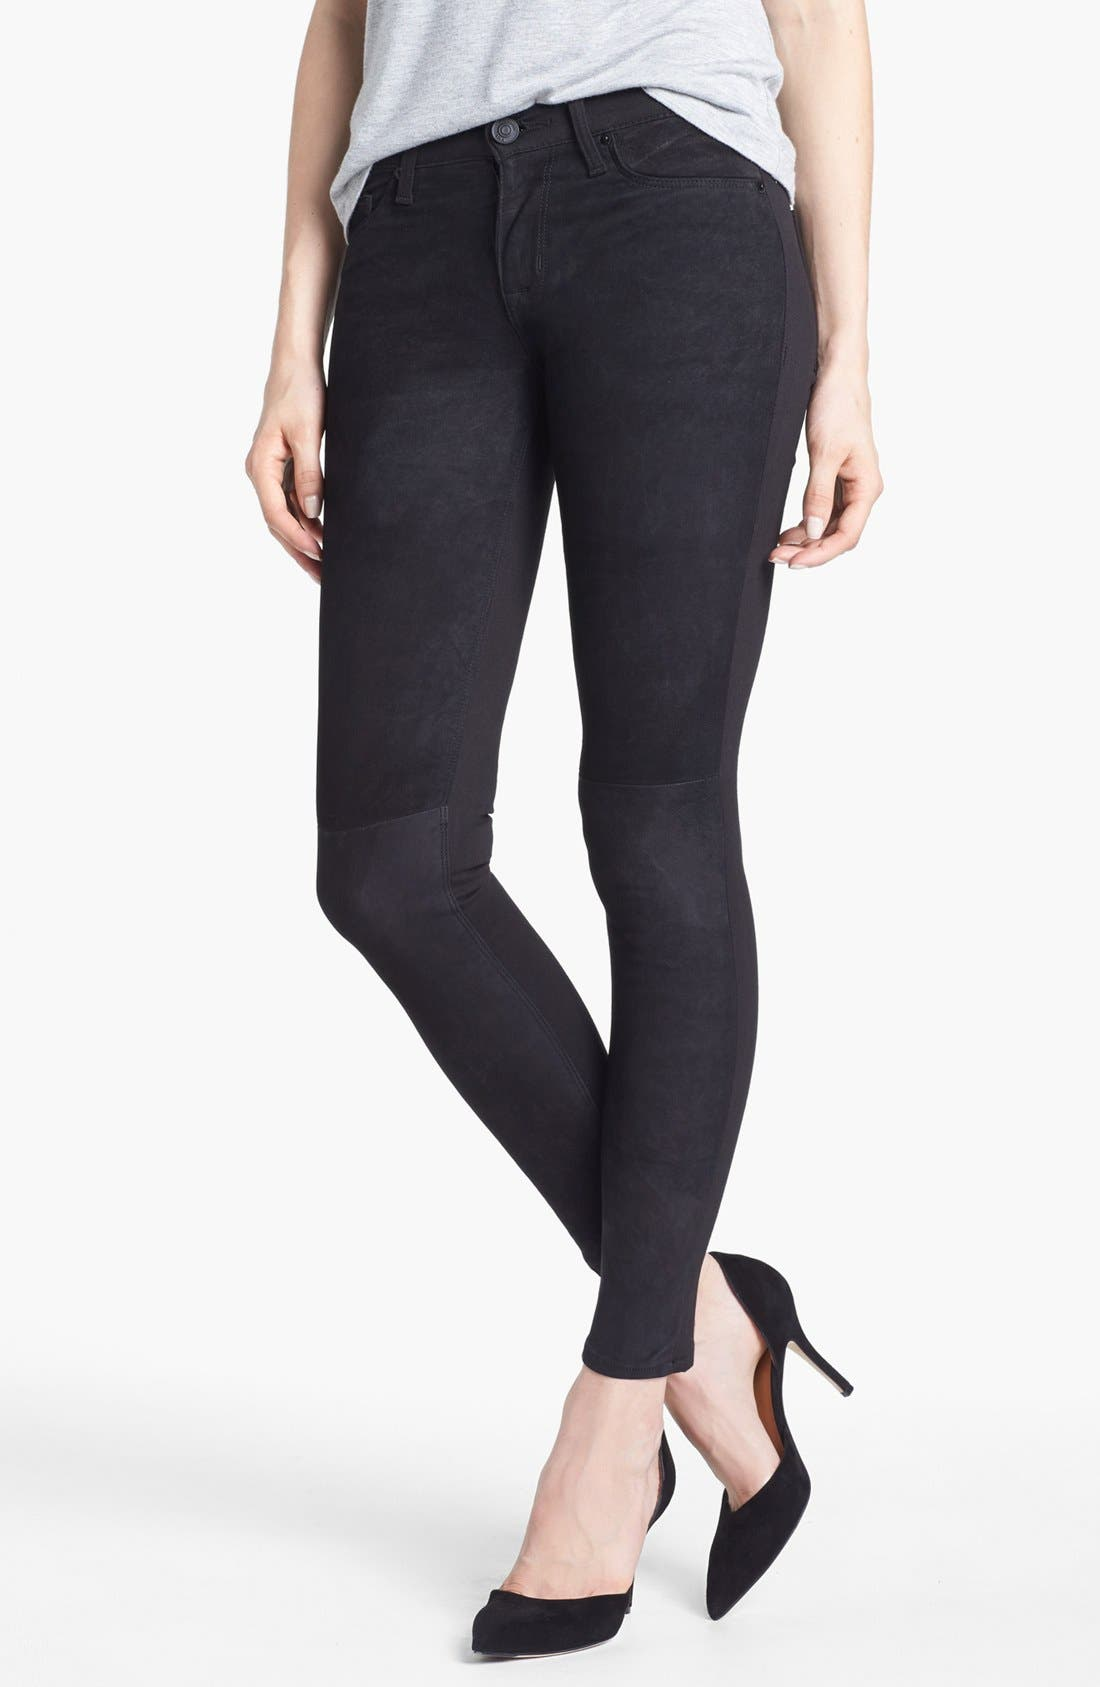 Alternate Image 1 Selected - Hudson Jeans 'Nico' Suede Front Mid Rise Skinny Jeans (Mirage)